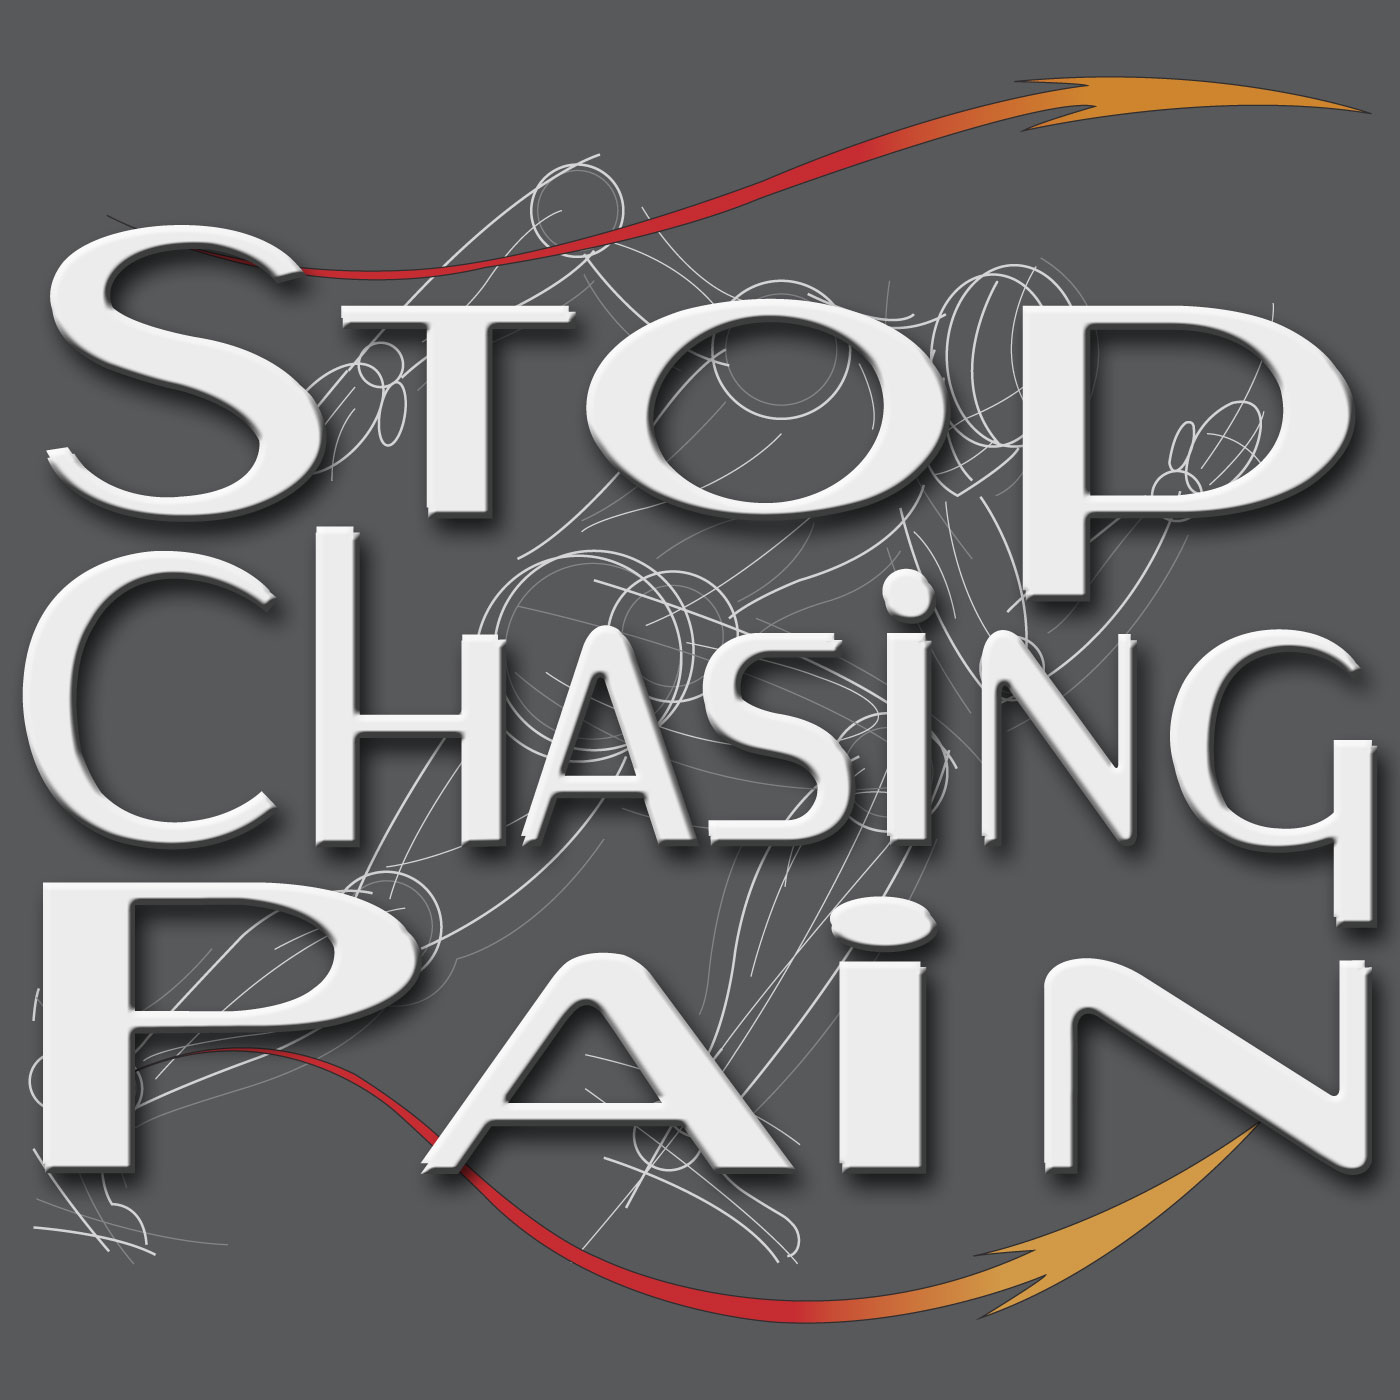 Stop Chasing Pain